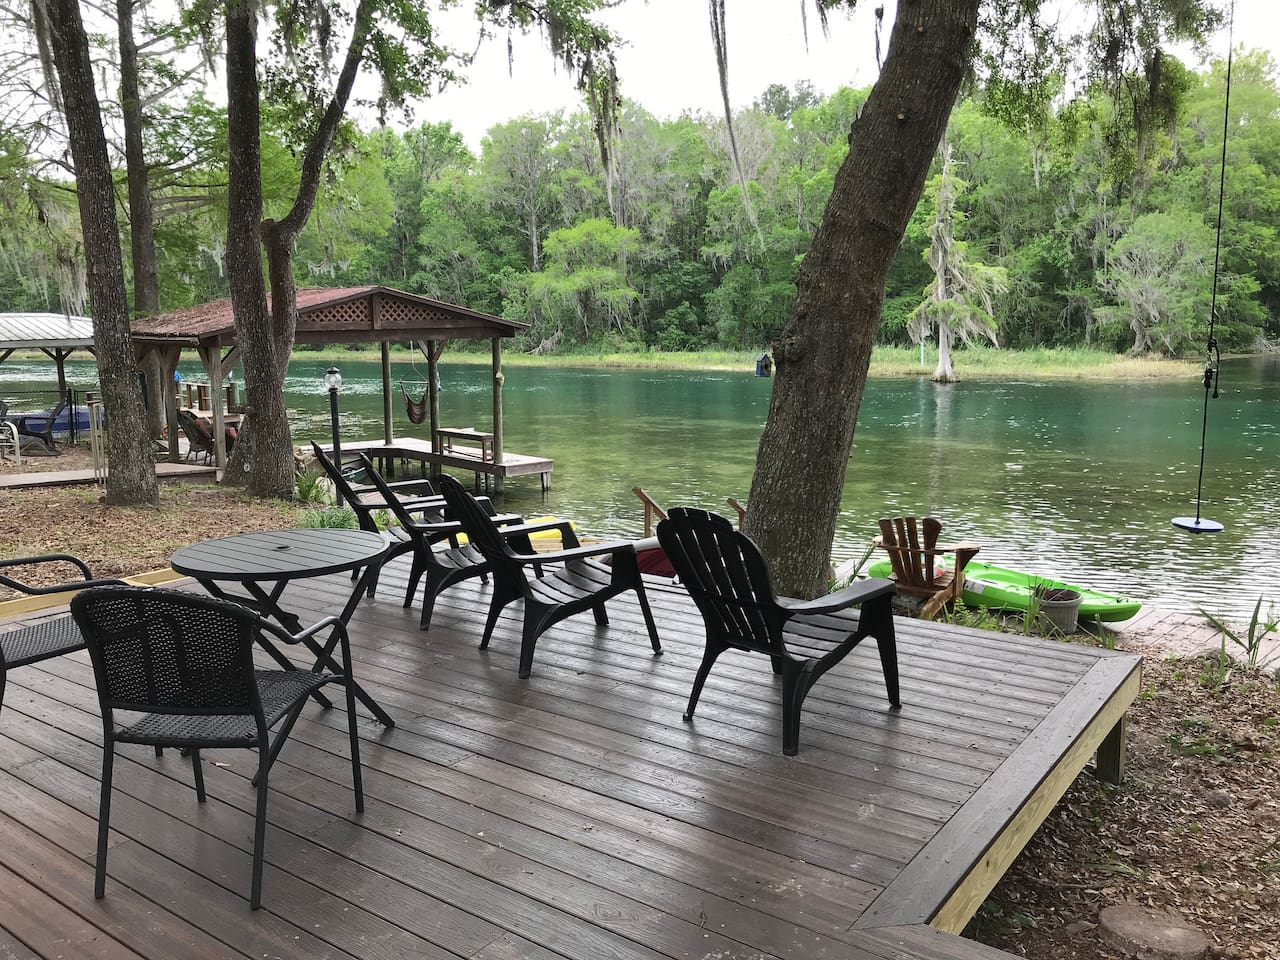 Large deck is great for outdoor dining or enjoying a glass of wine, soaking up the river.